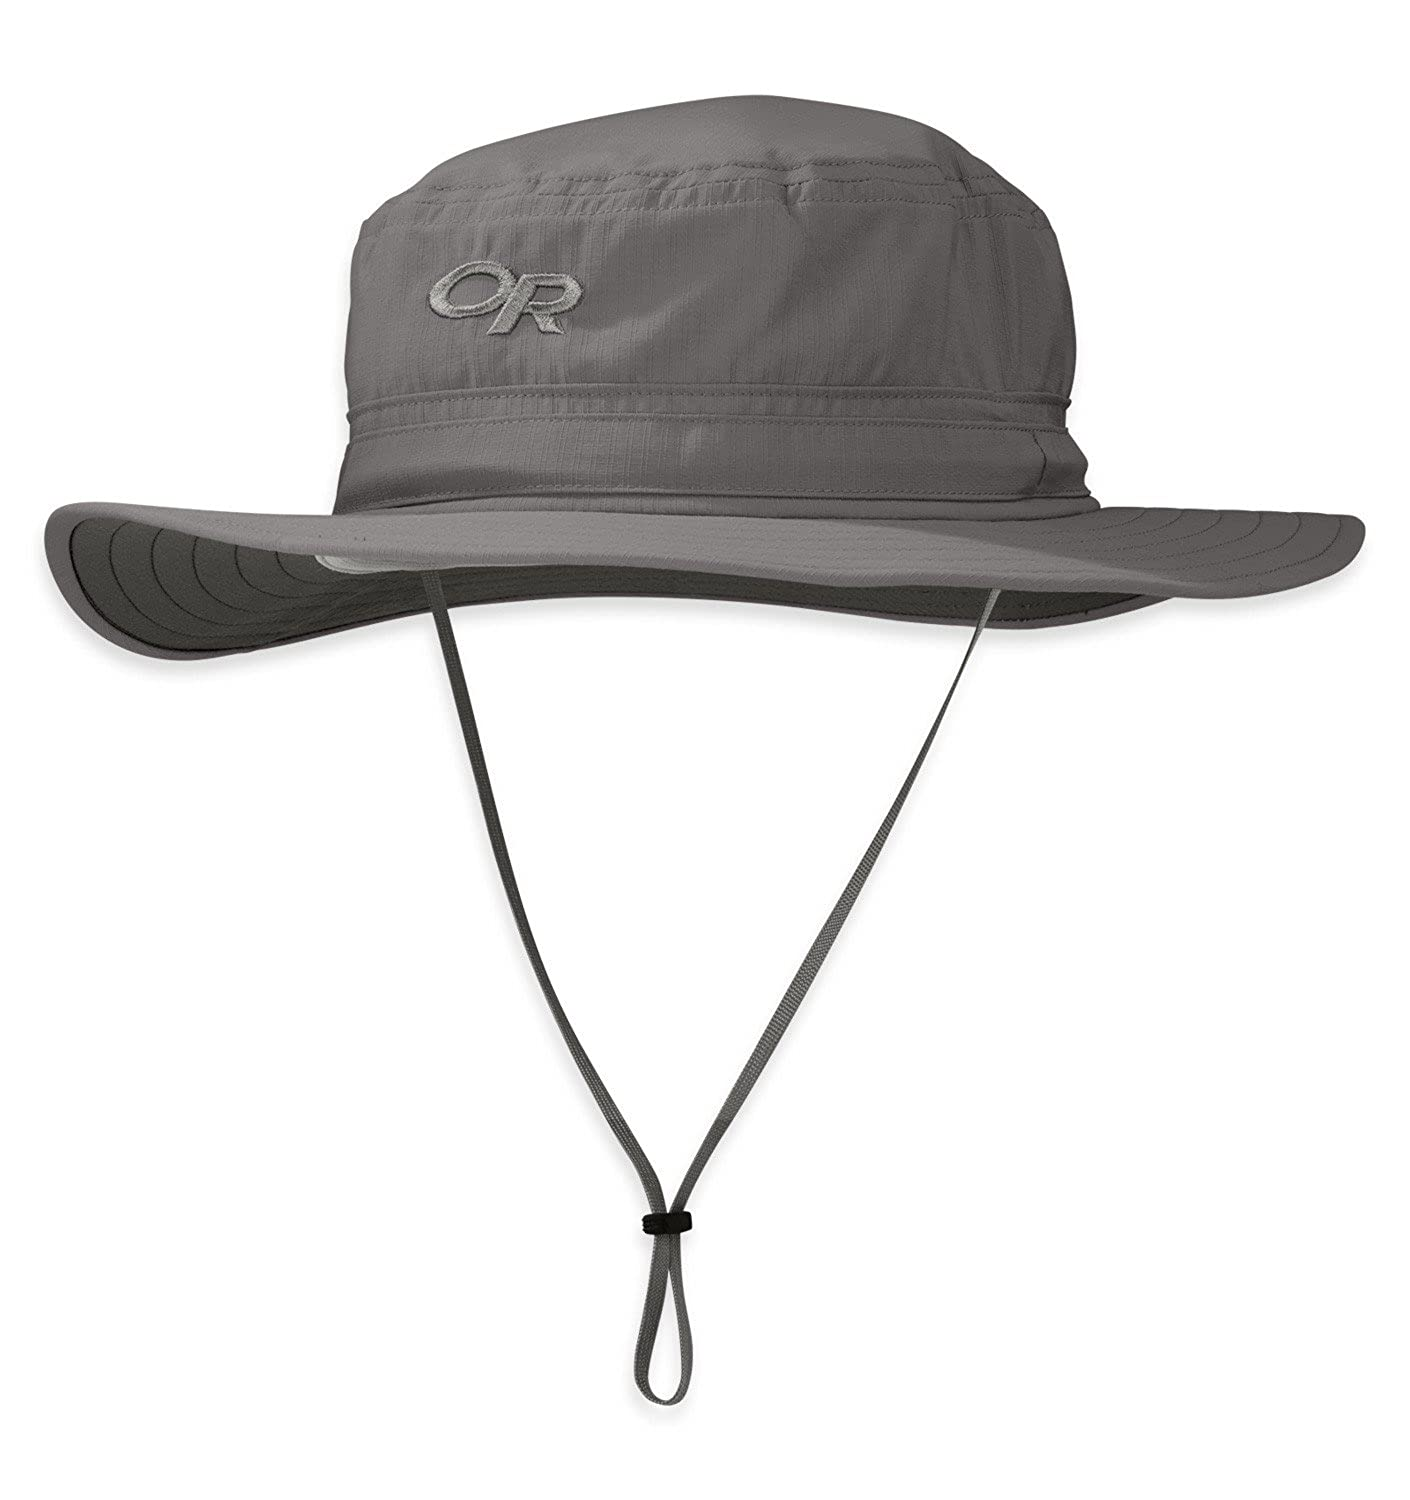 c97c6f9fc8f Amazon.com   Outdoor Research Helios Sun Hat   Outdoor Research Helios Sand    Clothing